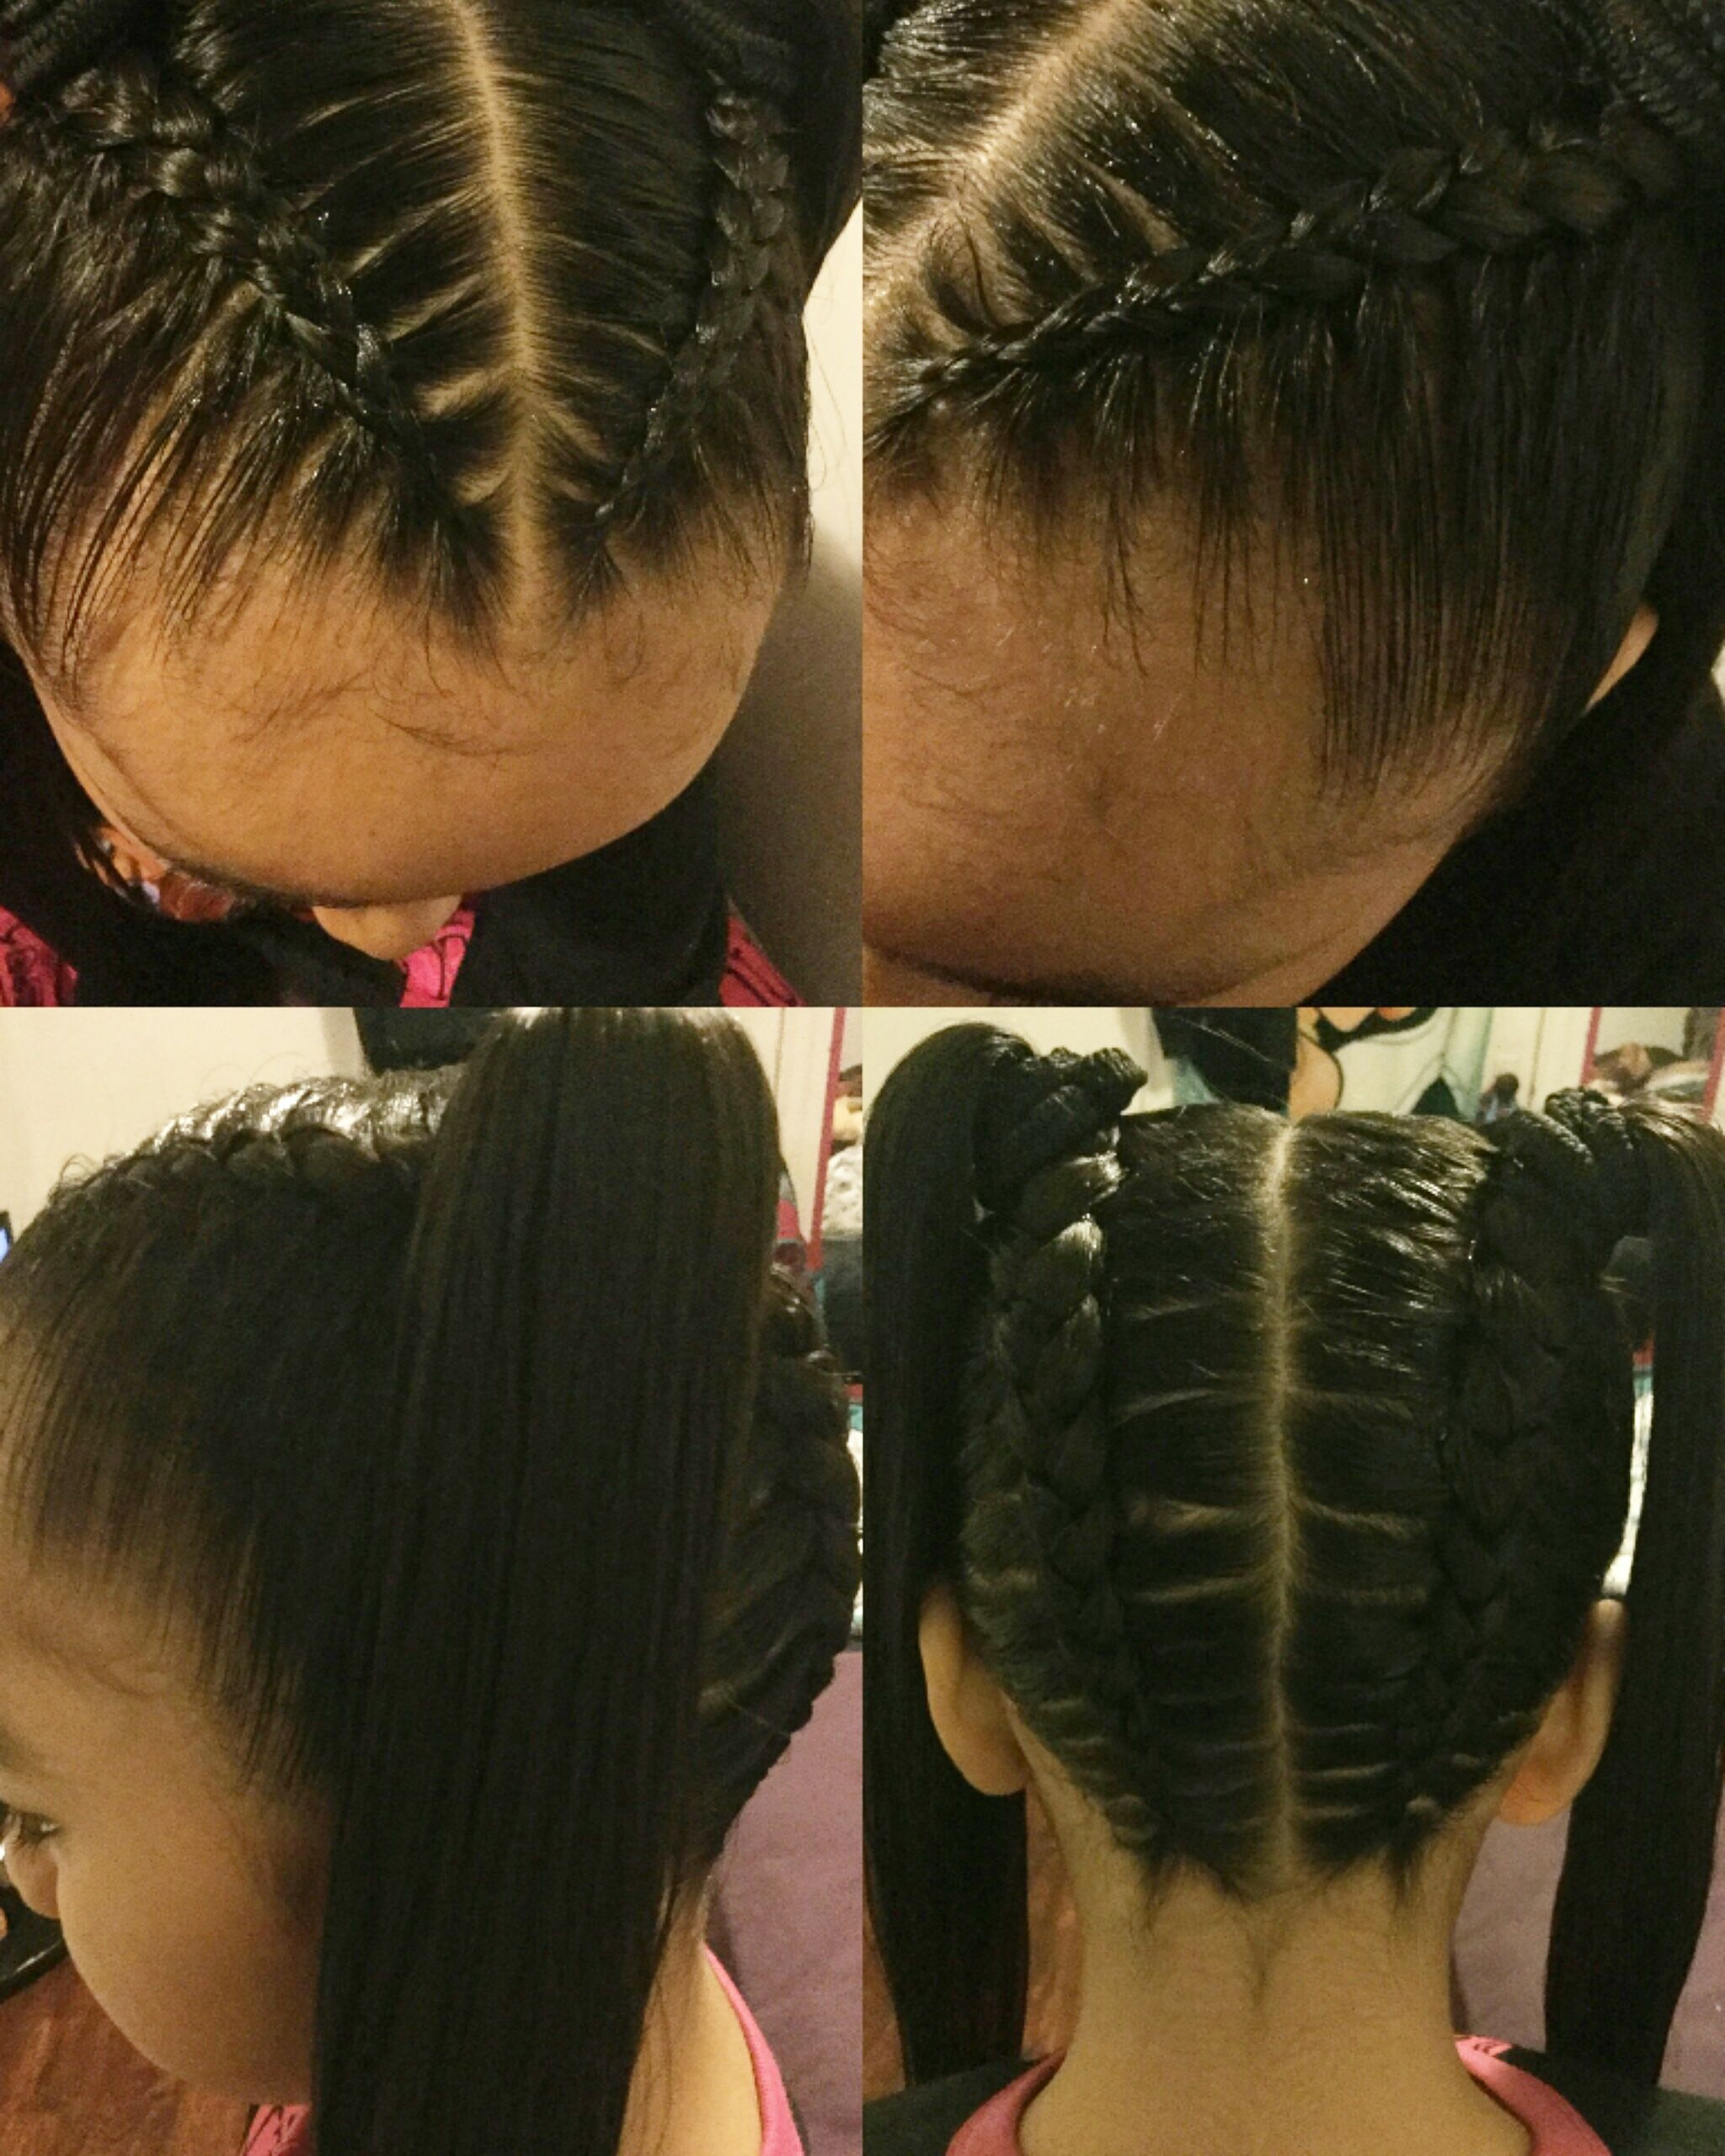 2 Braids With A Twist Tossed Tossedtresses Tossedbyteyanna Phillyhairstylist Hairtherapy Tw Two Braid Hairstyles Braids For Black Hair Braided Hairstyles